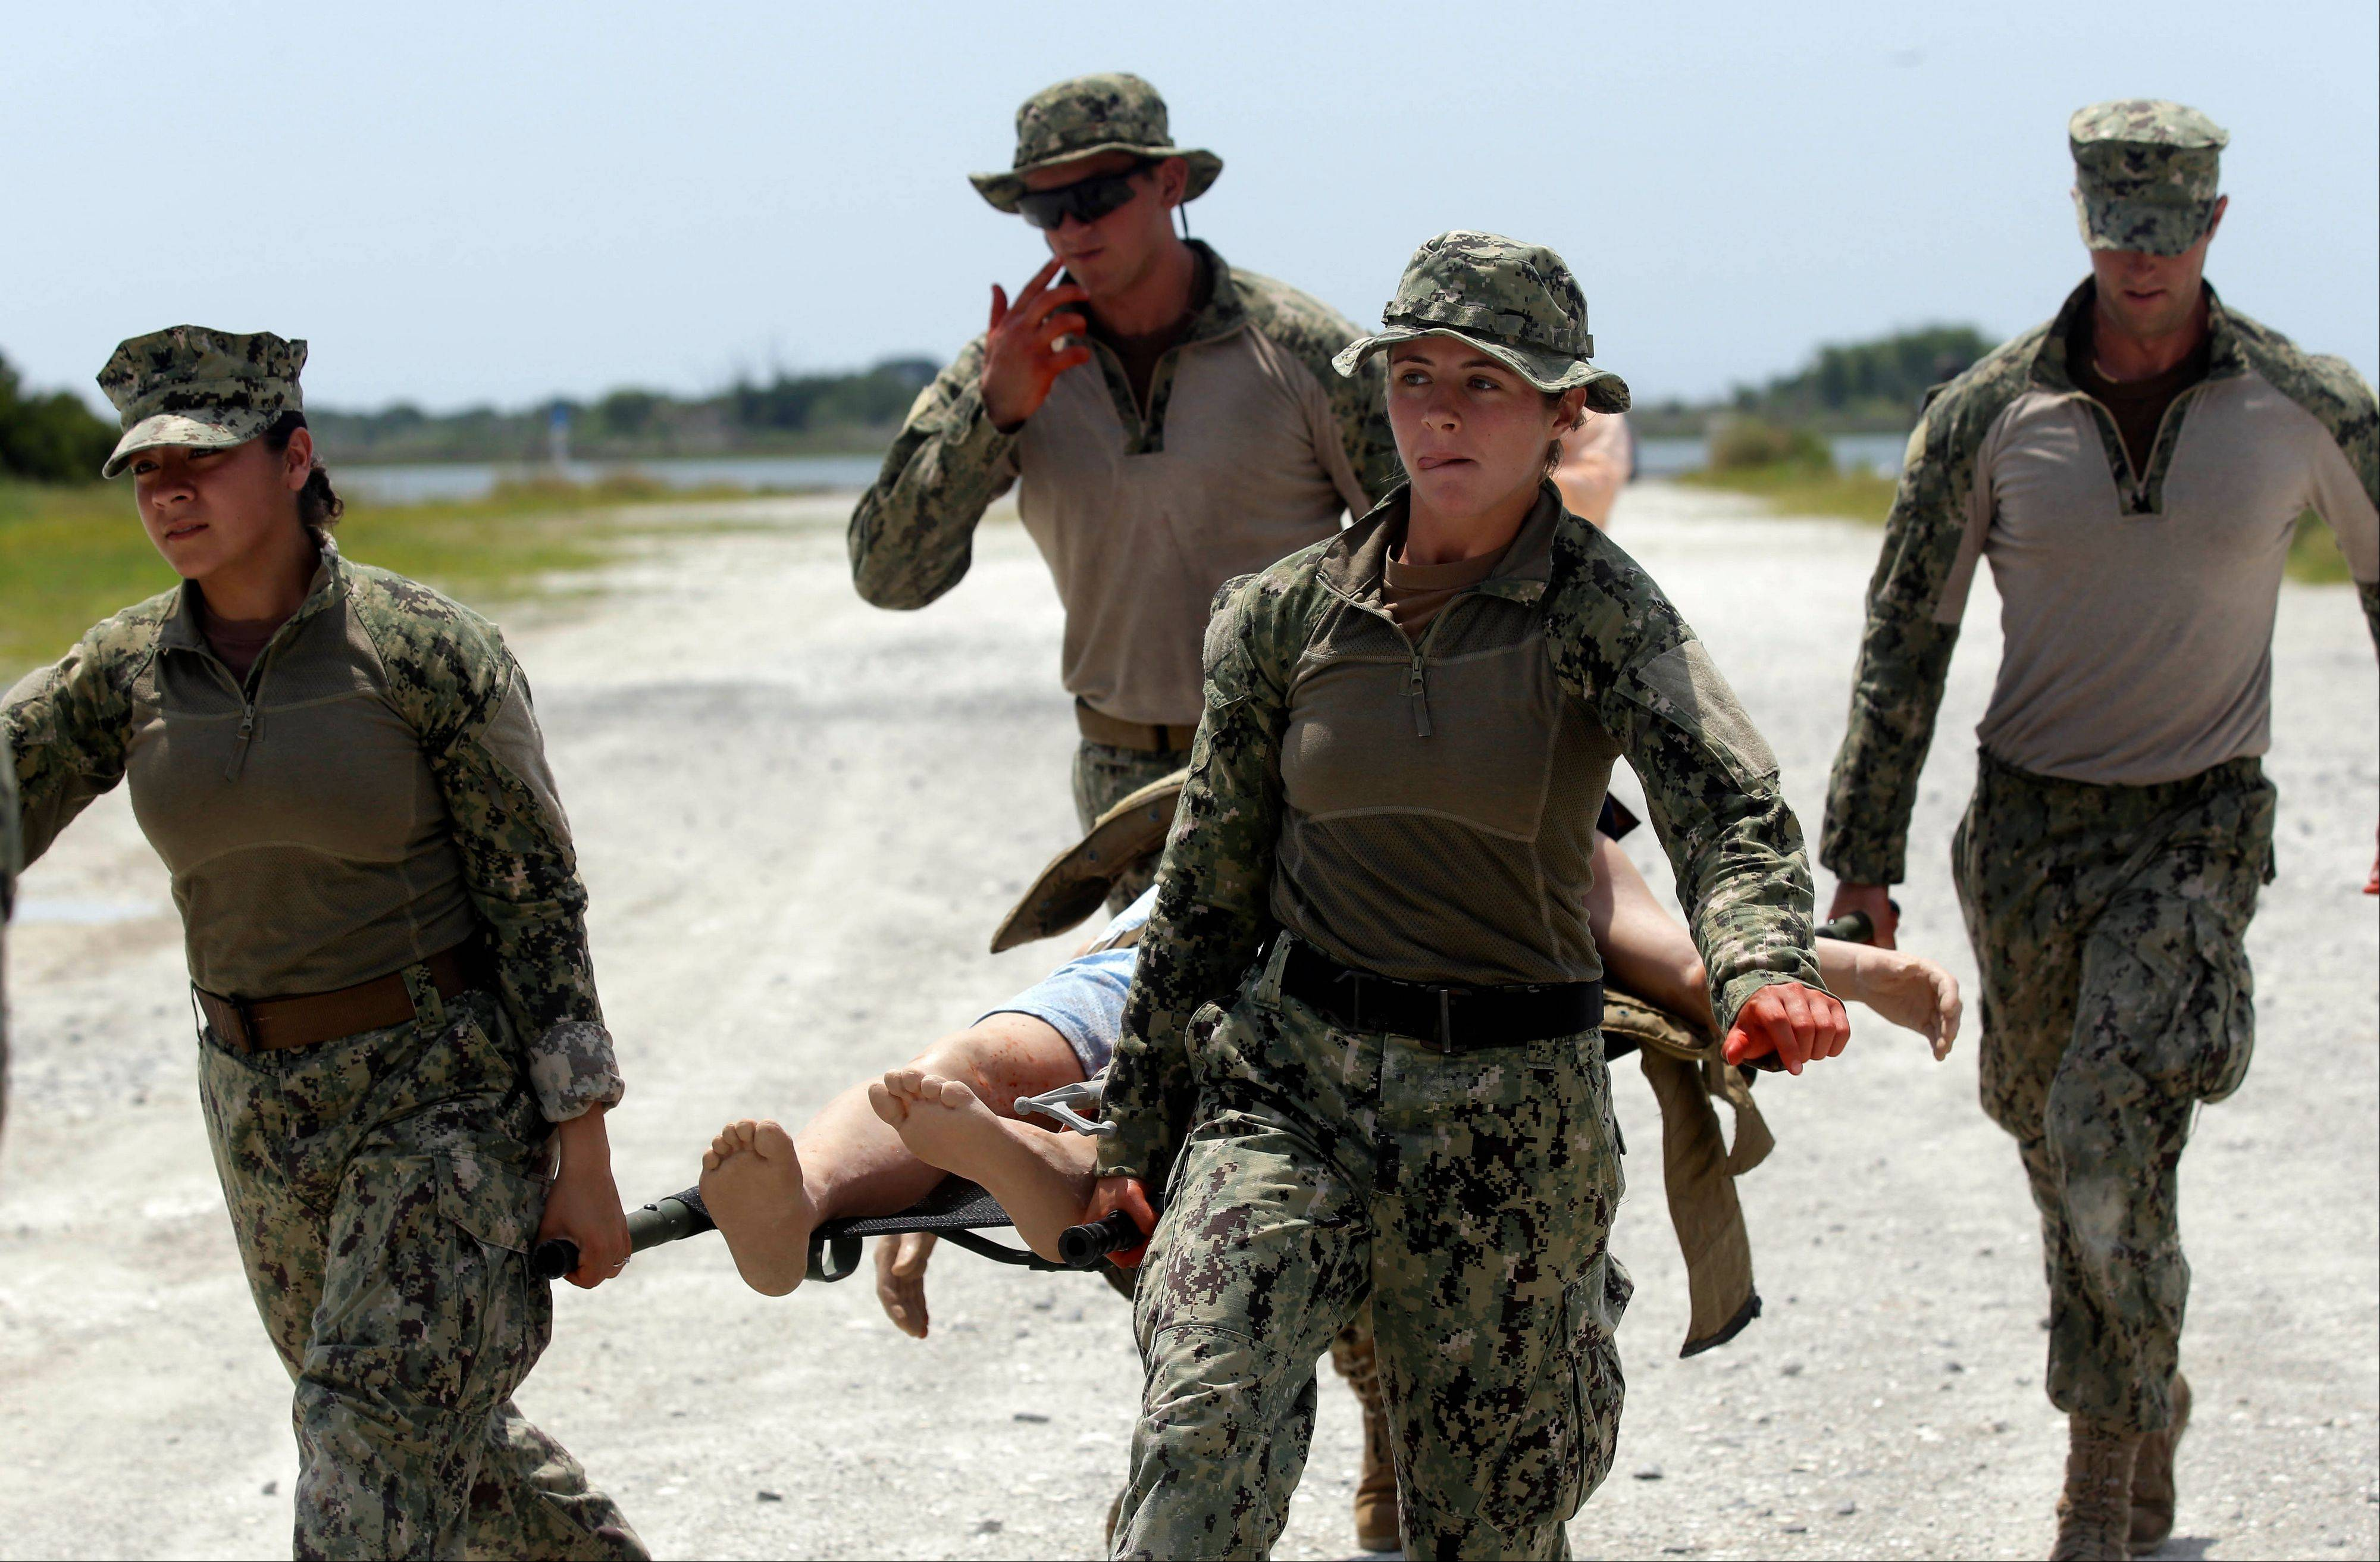 Schnatzmeyer, front left, and Hinchliff, right, both of Coastal Riverine Squadron 2, carry a mock wounded person as they participate in a U.S. Navy Riverine Crewman Course.